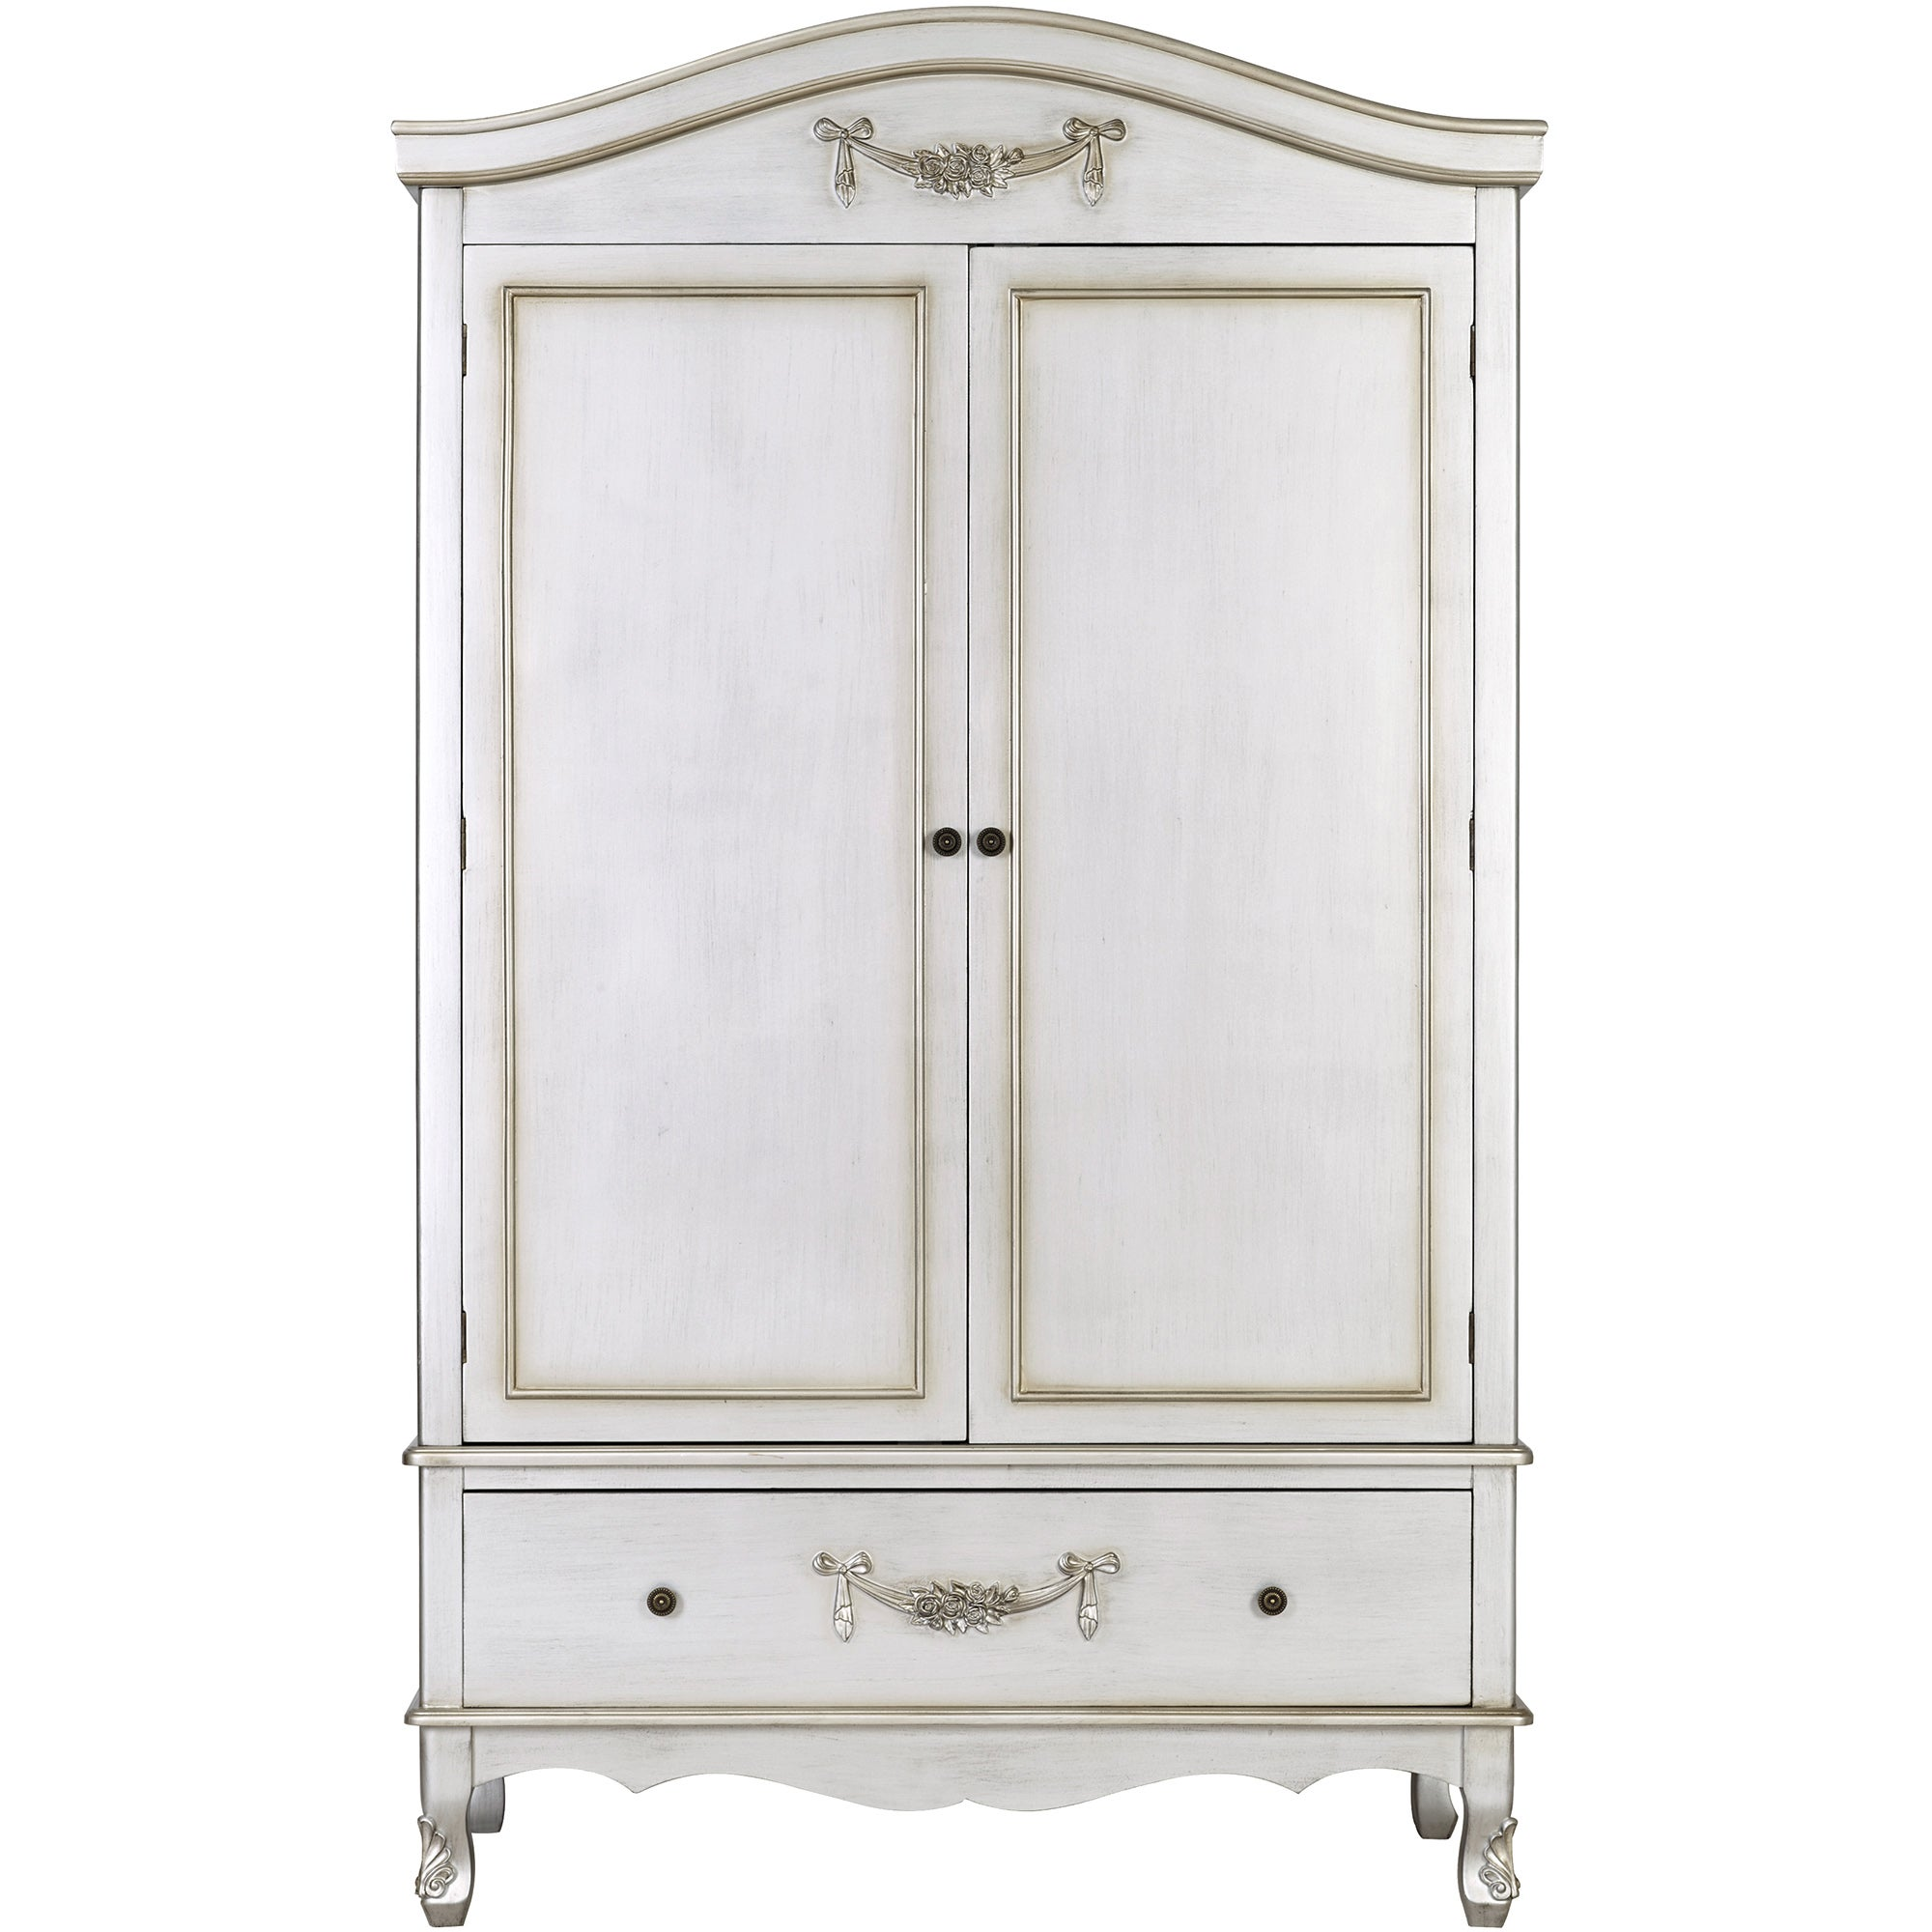 Photo of Toulouse silver double wardrobe silver -grey-